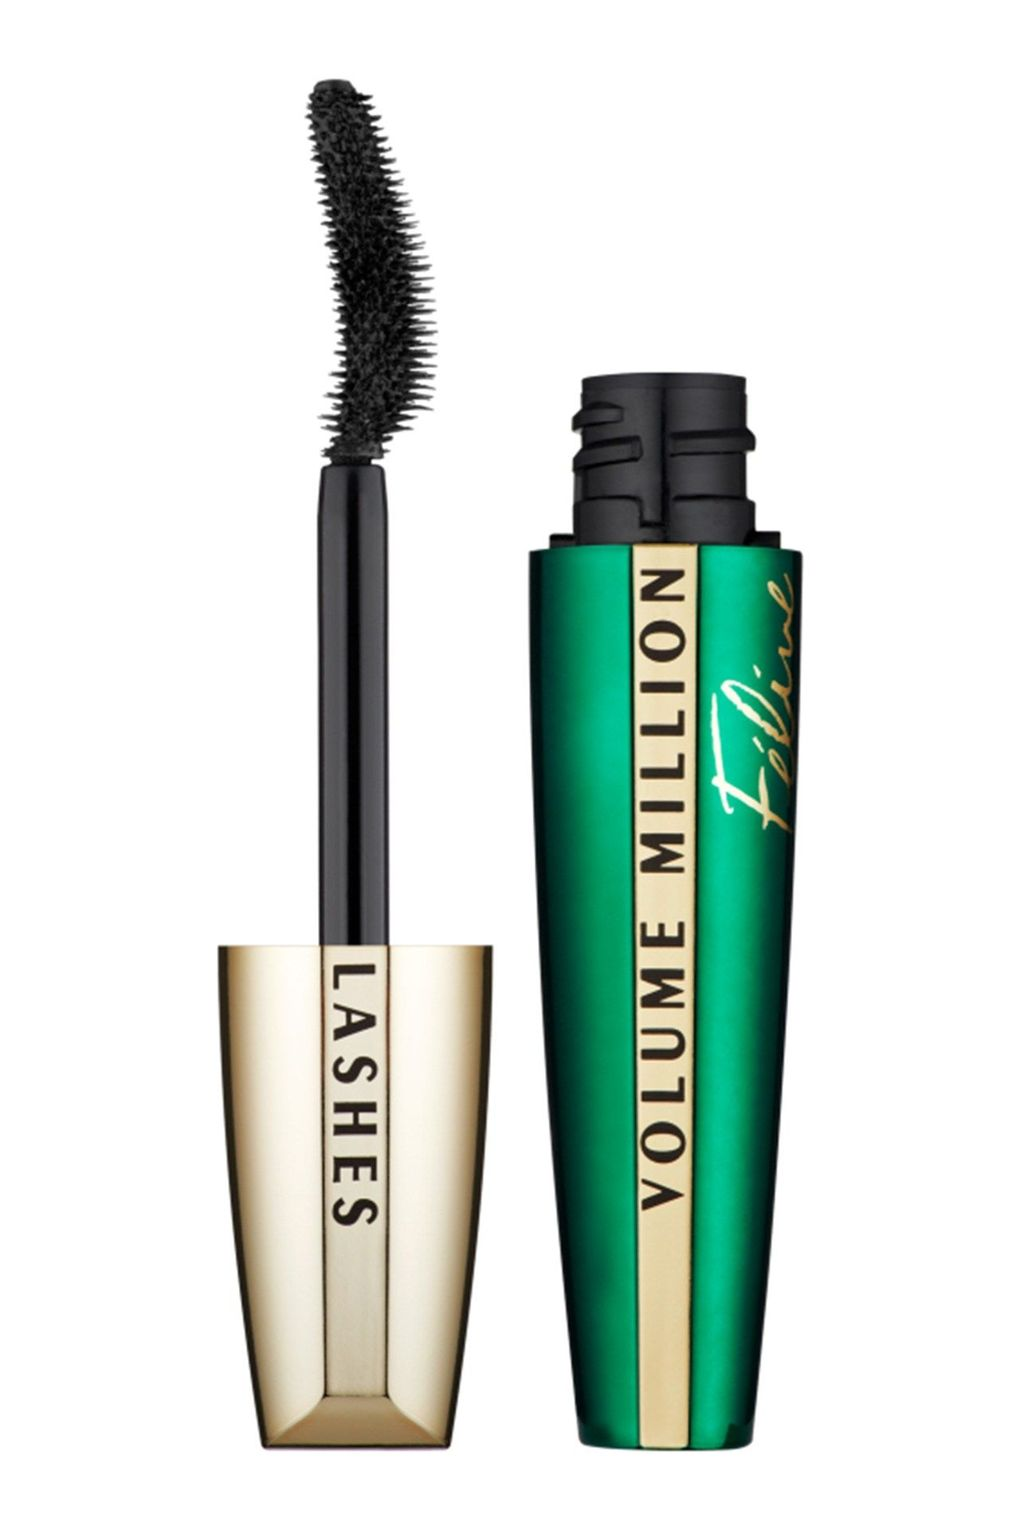 L'Oréal Paris Volume Million Lashes Feline Mascara